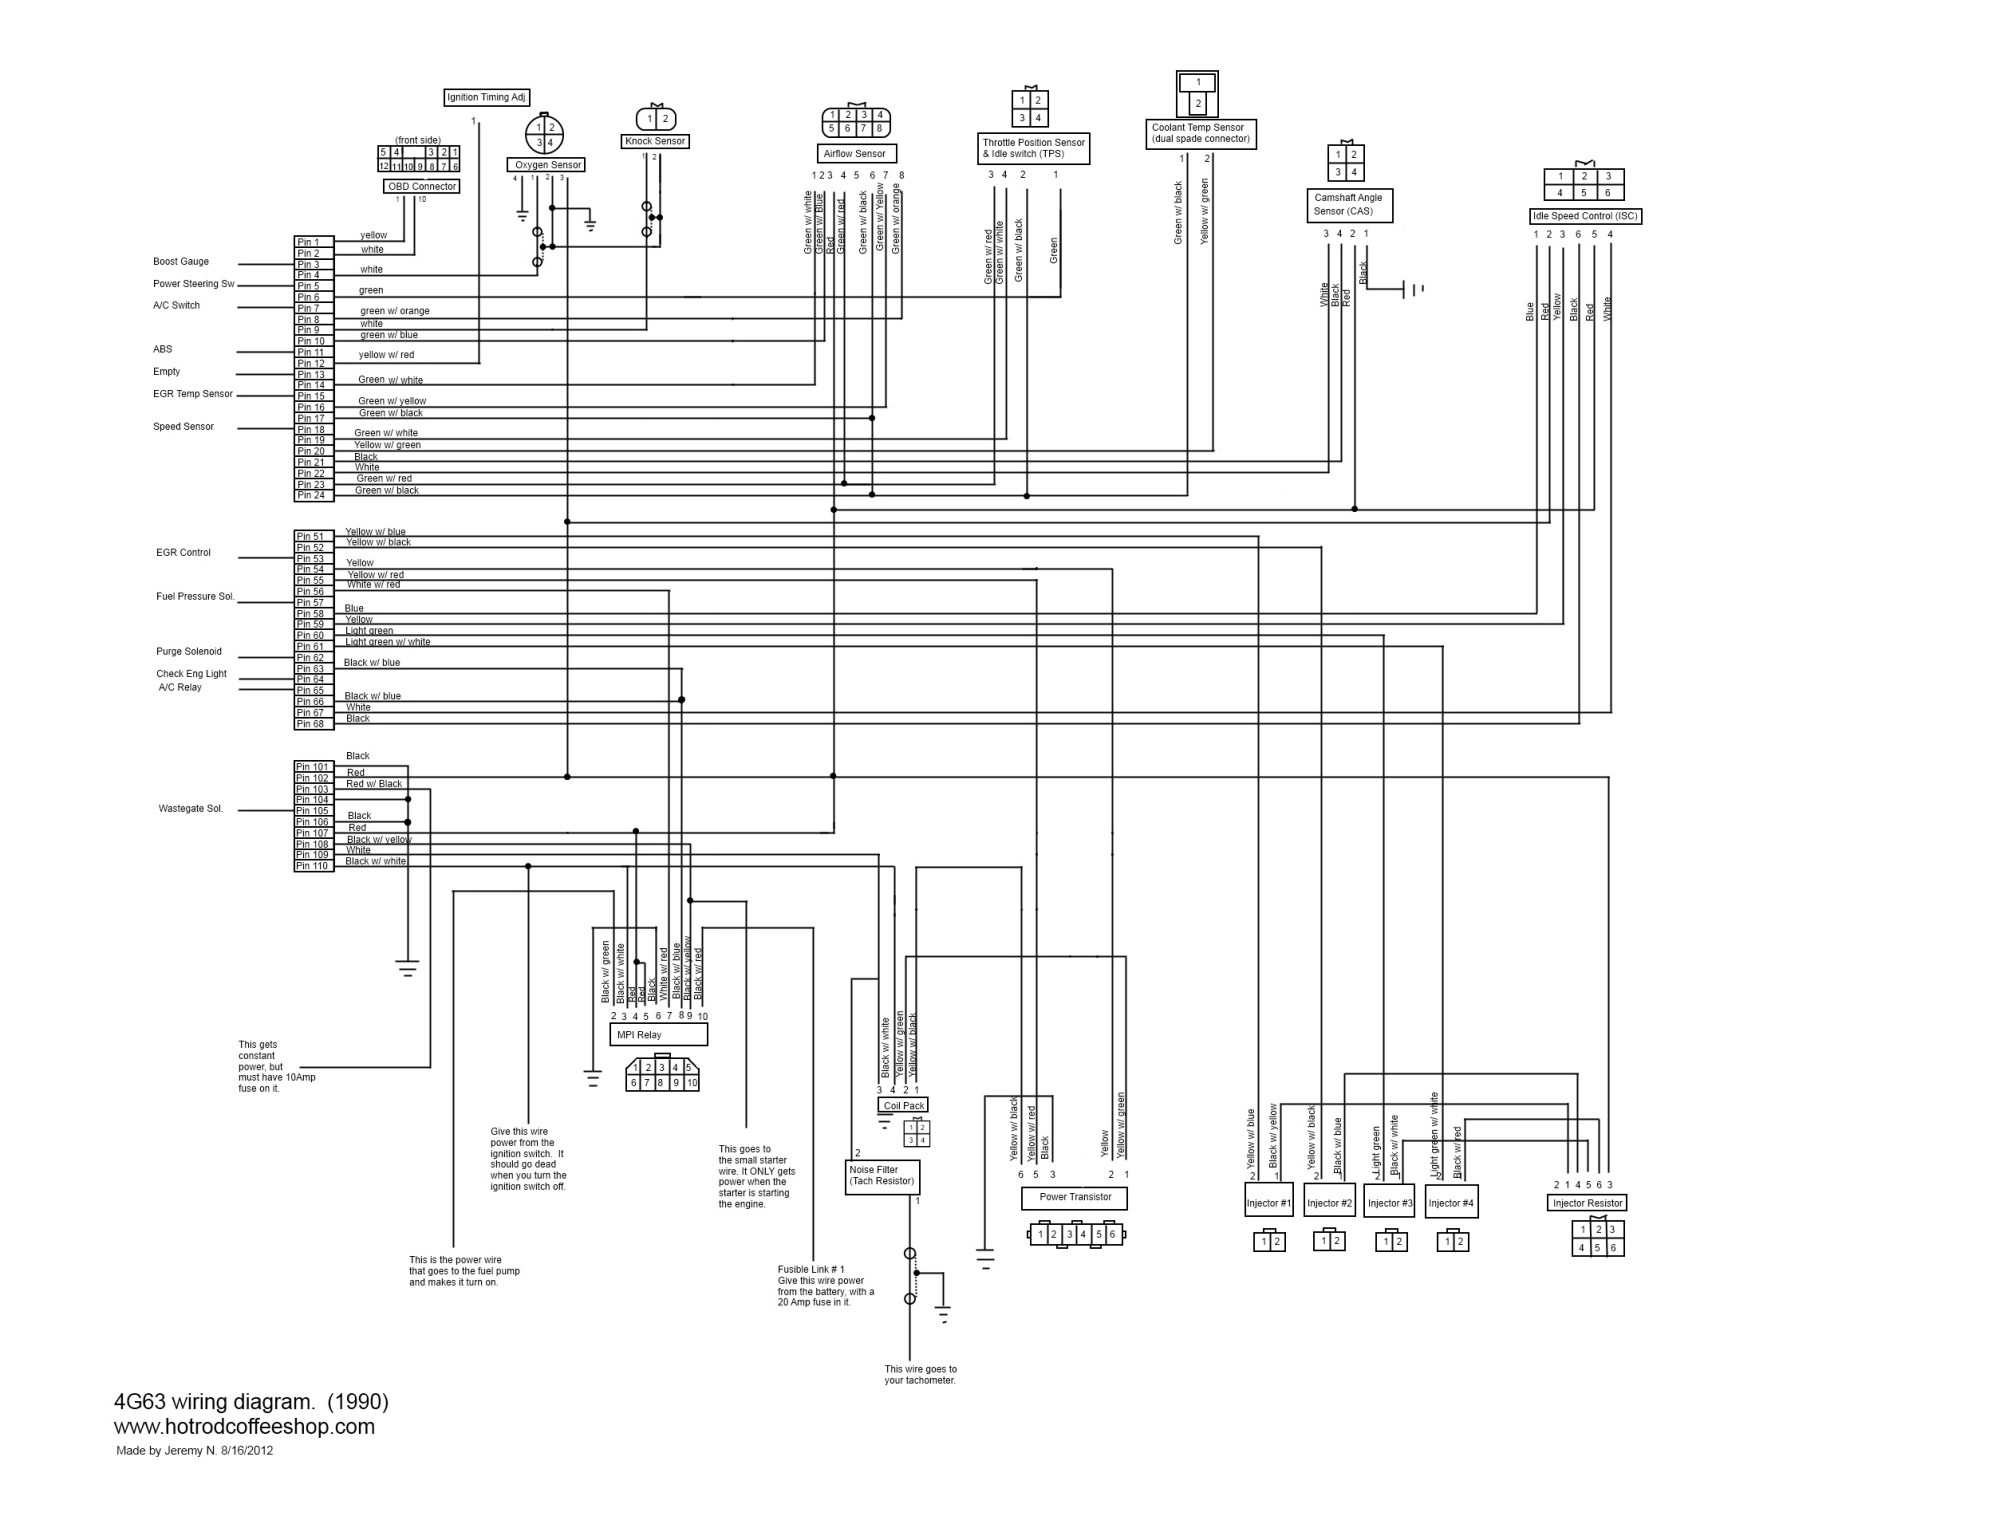 hight resolution of engine computer electrical diagram wiring library rh 90 evitta de maruti 800 ecm circuit diagram pdf